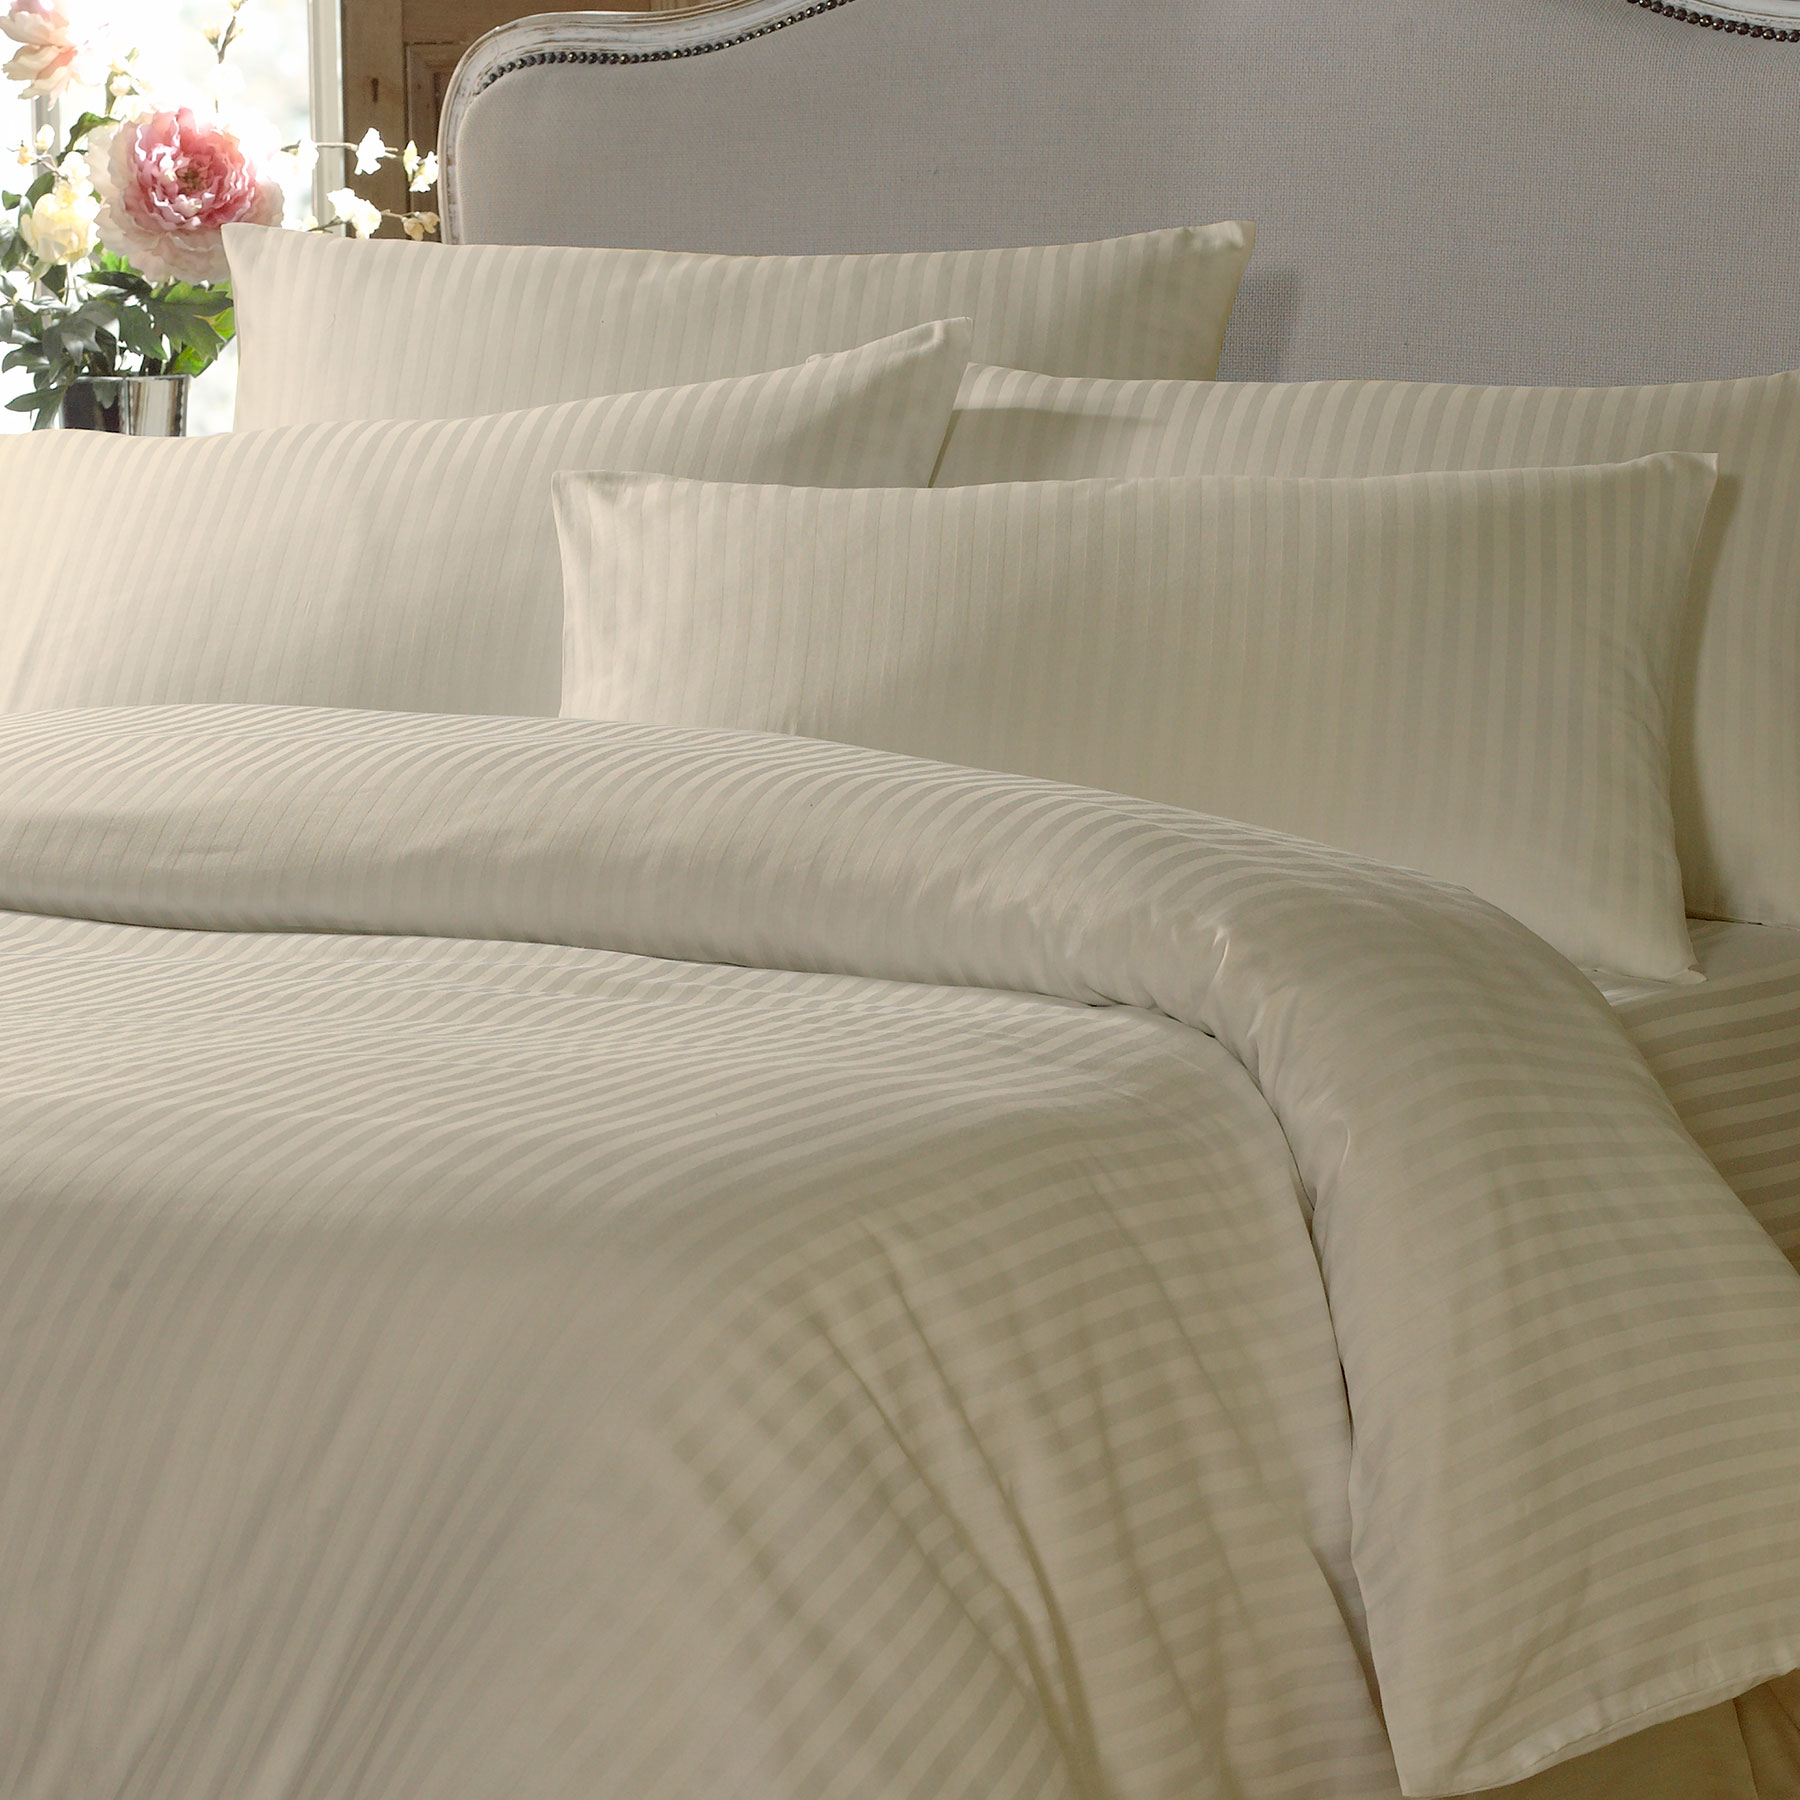 View Whitakers Bed Linen Collection Details